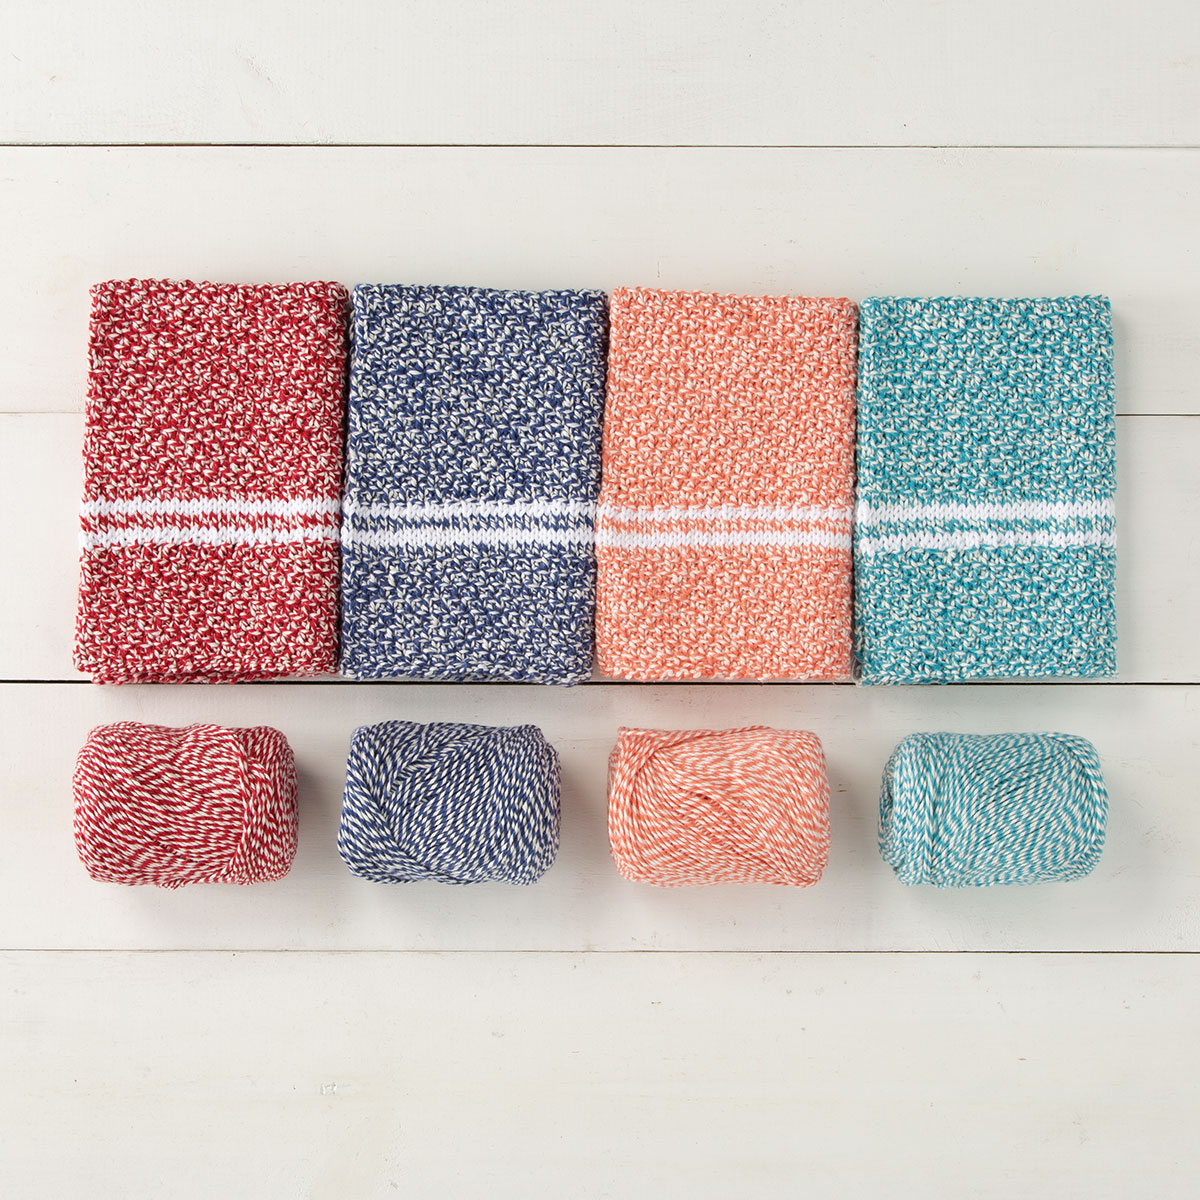 Knitting Pattern Kit for Dish Towels